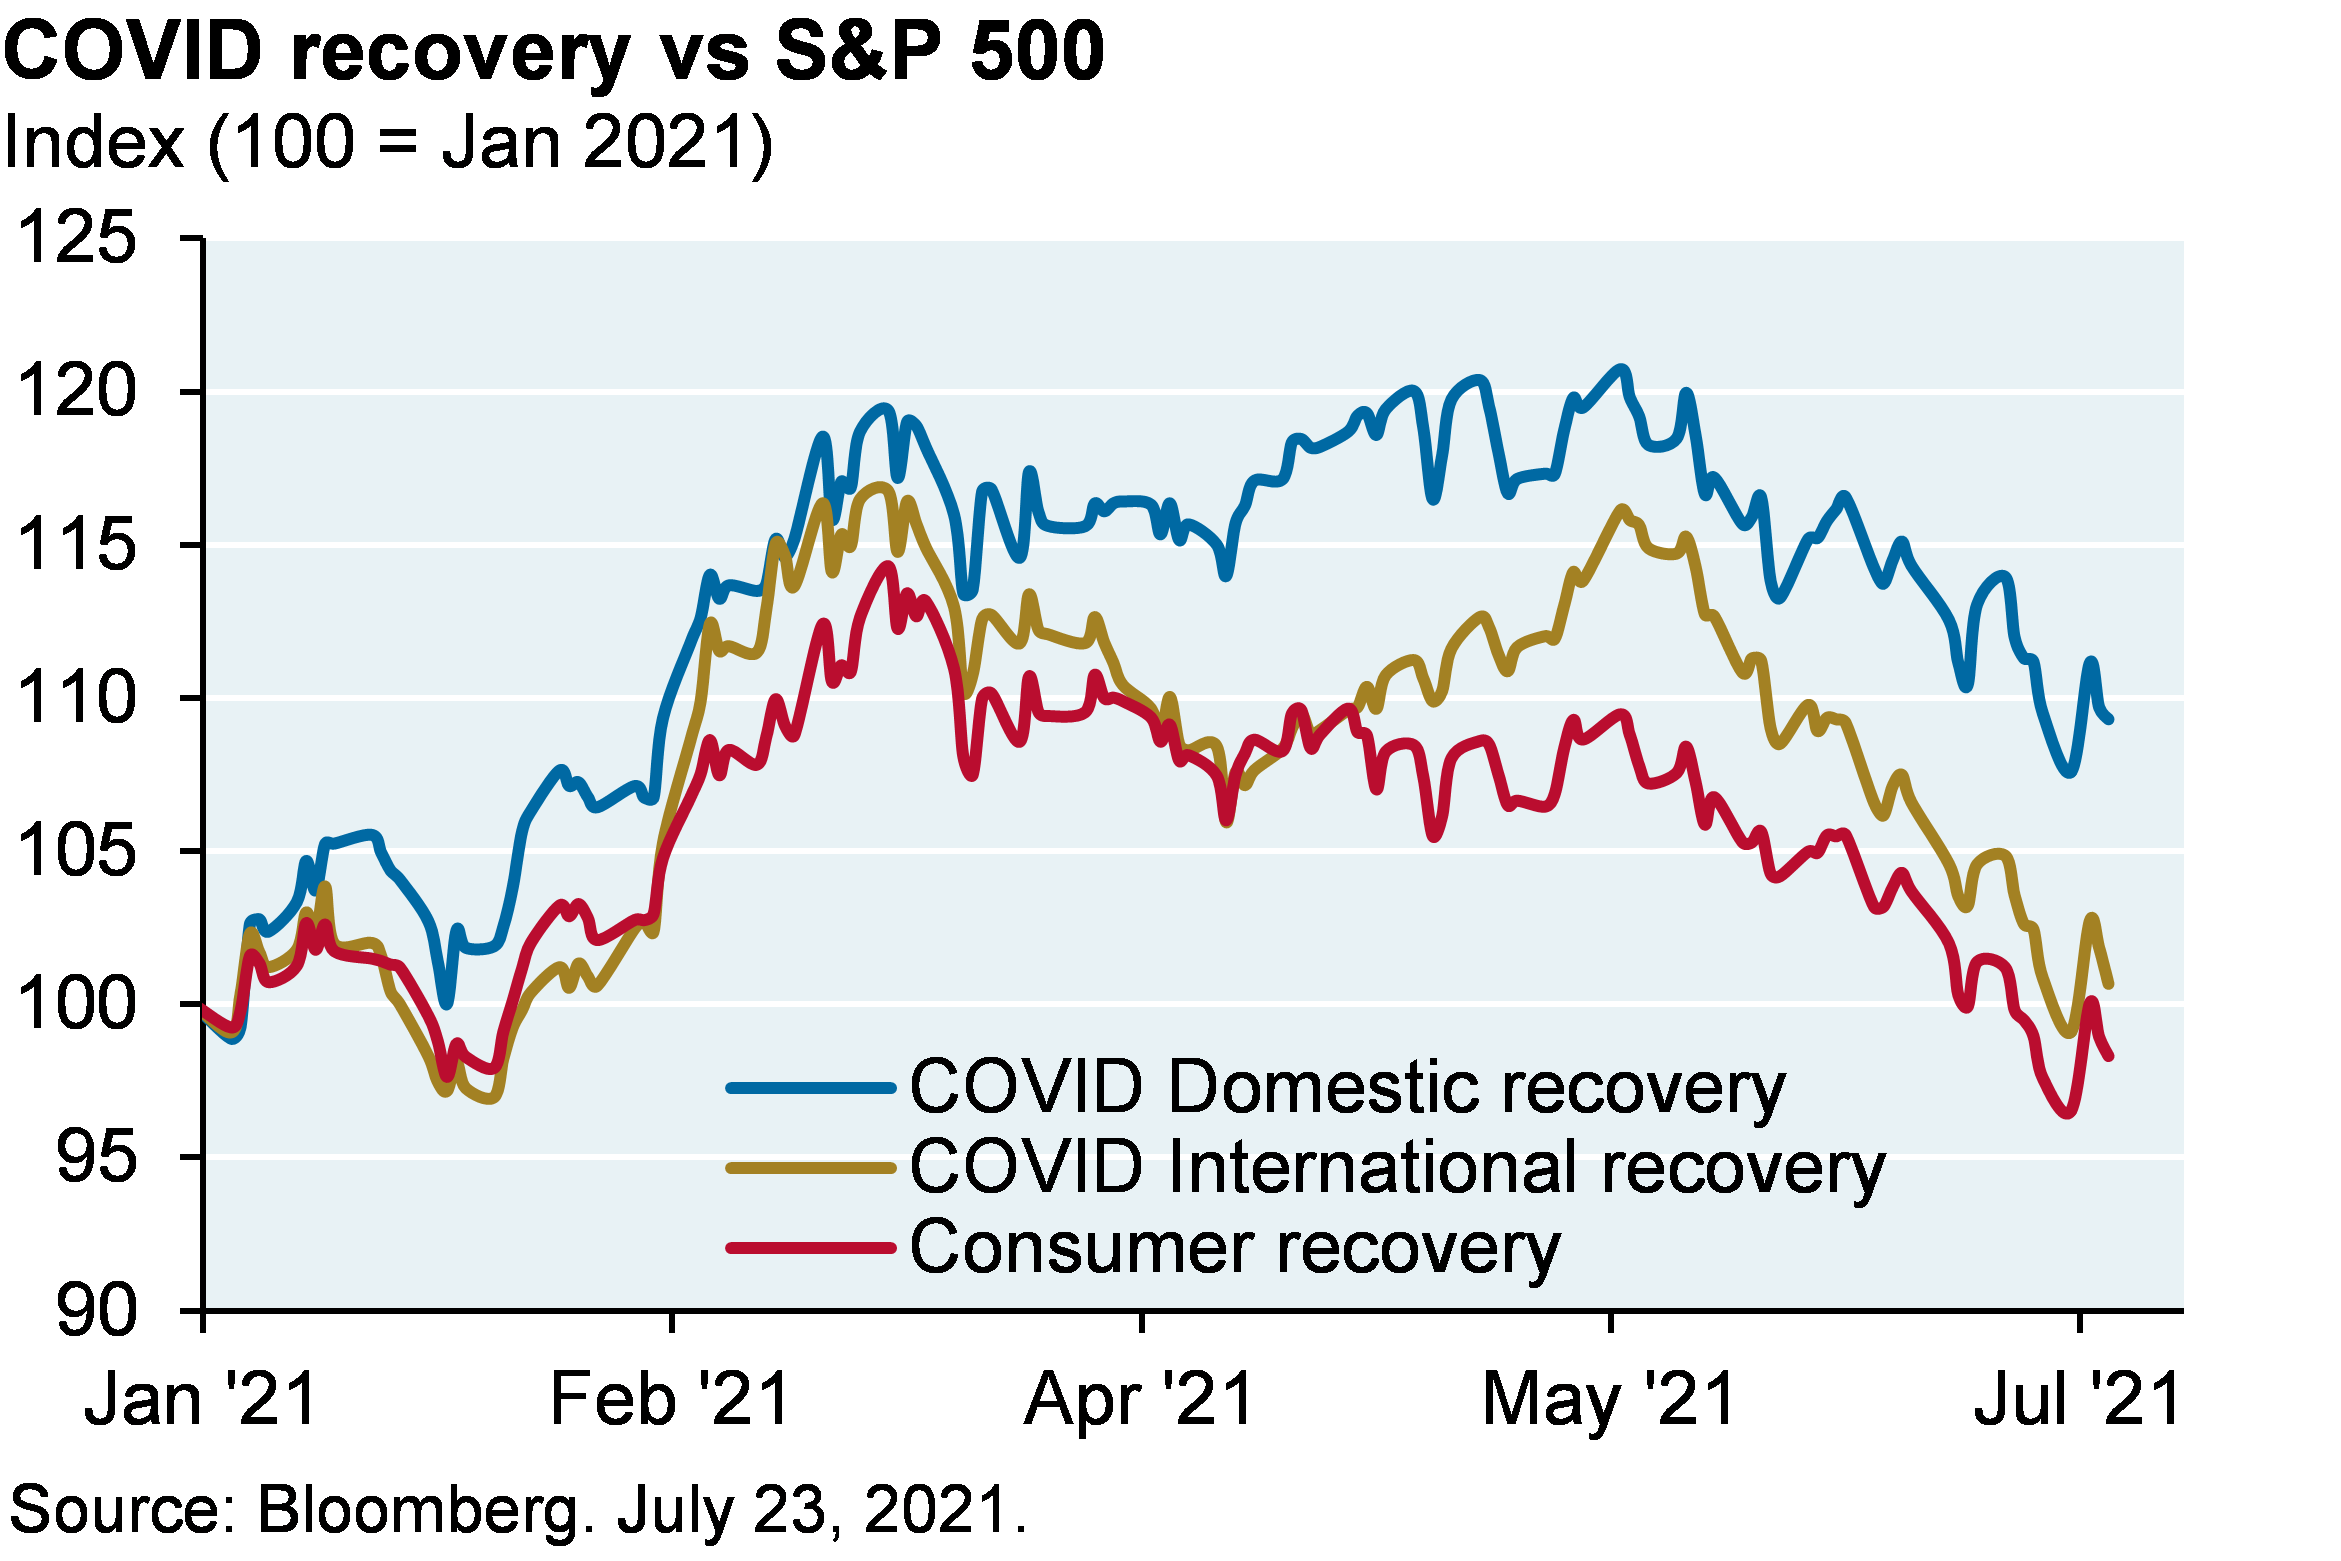 Line chart shows the COVID recovery vs S&P 500 shown as an index where 100 represents January 2021 levels. Chart shows the COVID domestic recovery is around 107, the COVID international recovery just under 100, and the consumer recovery is around 97.